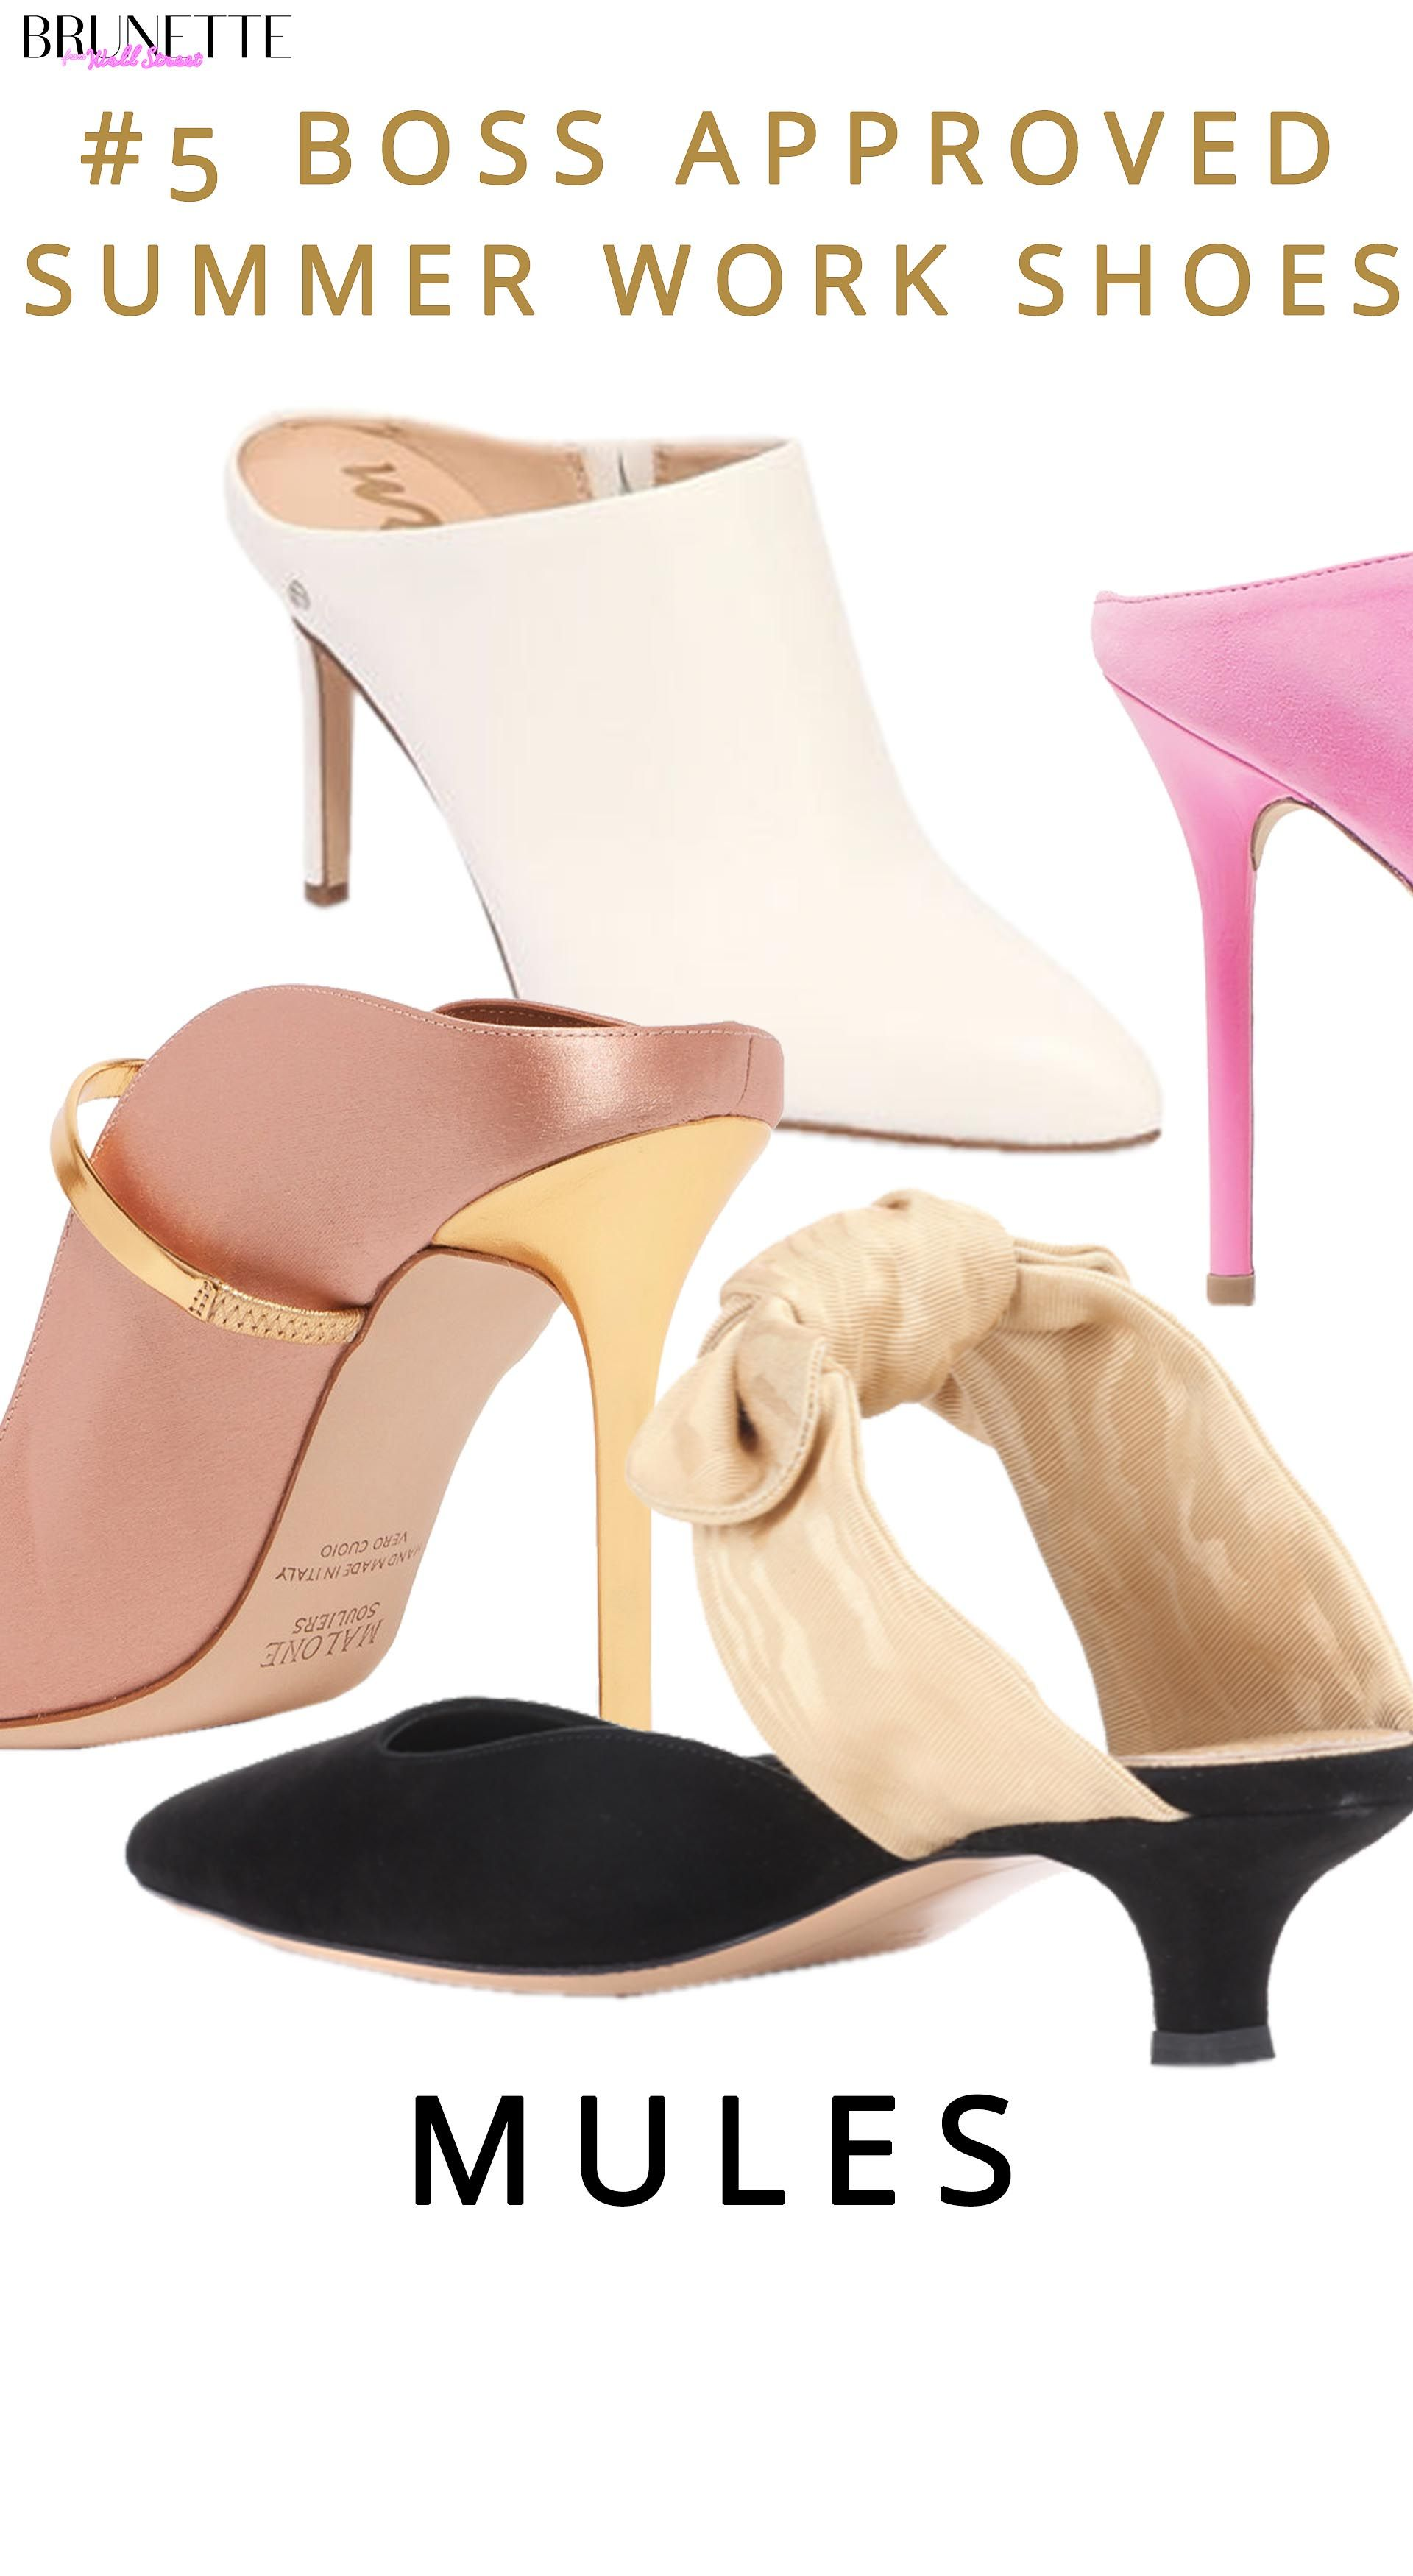 2020 Summer Work Shoes   Brunette from